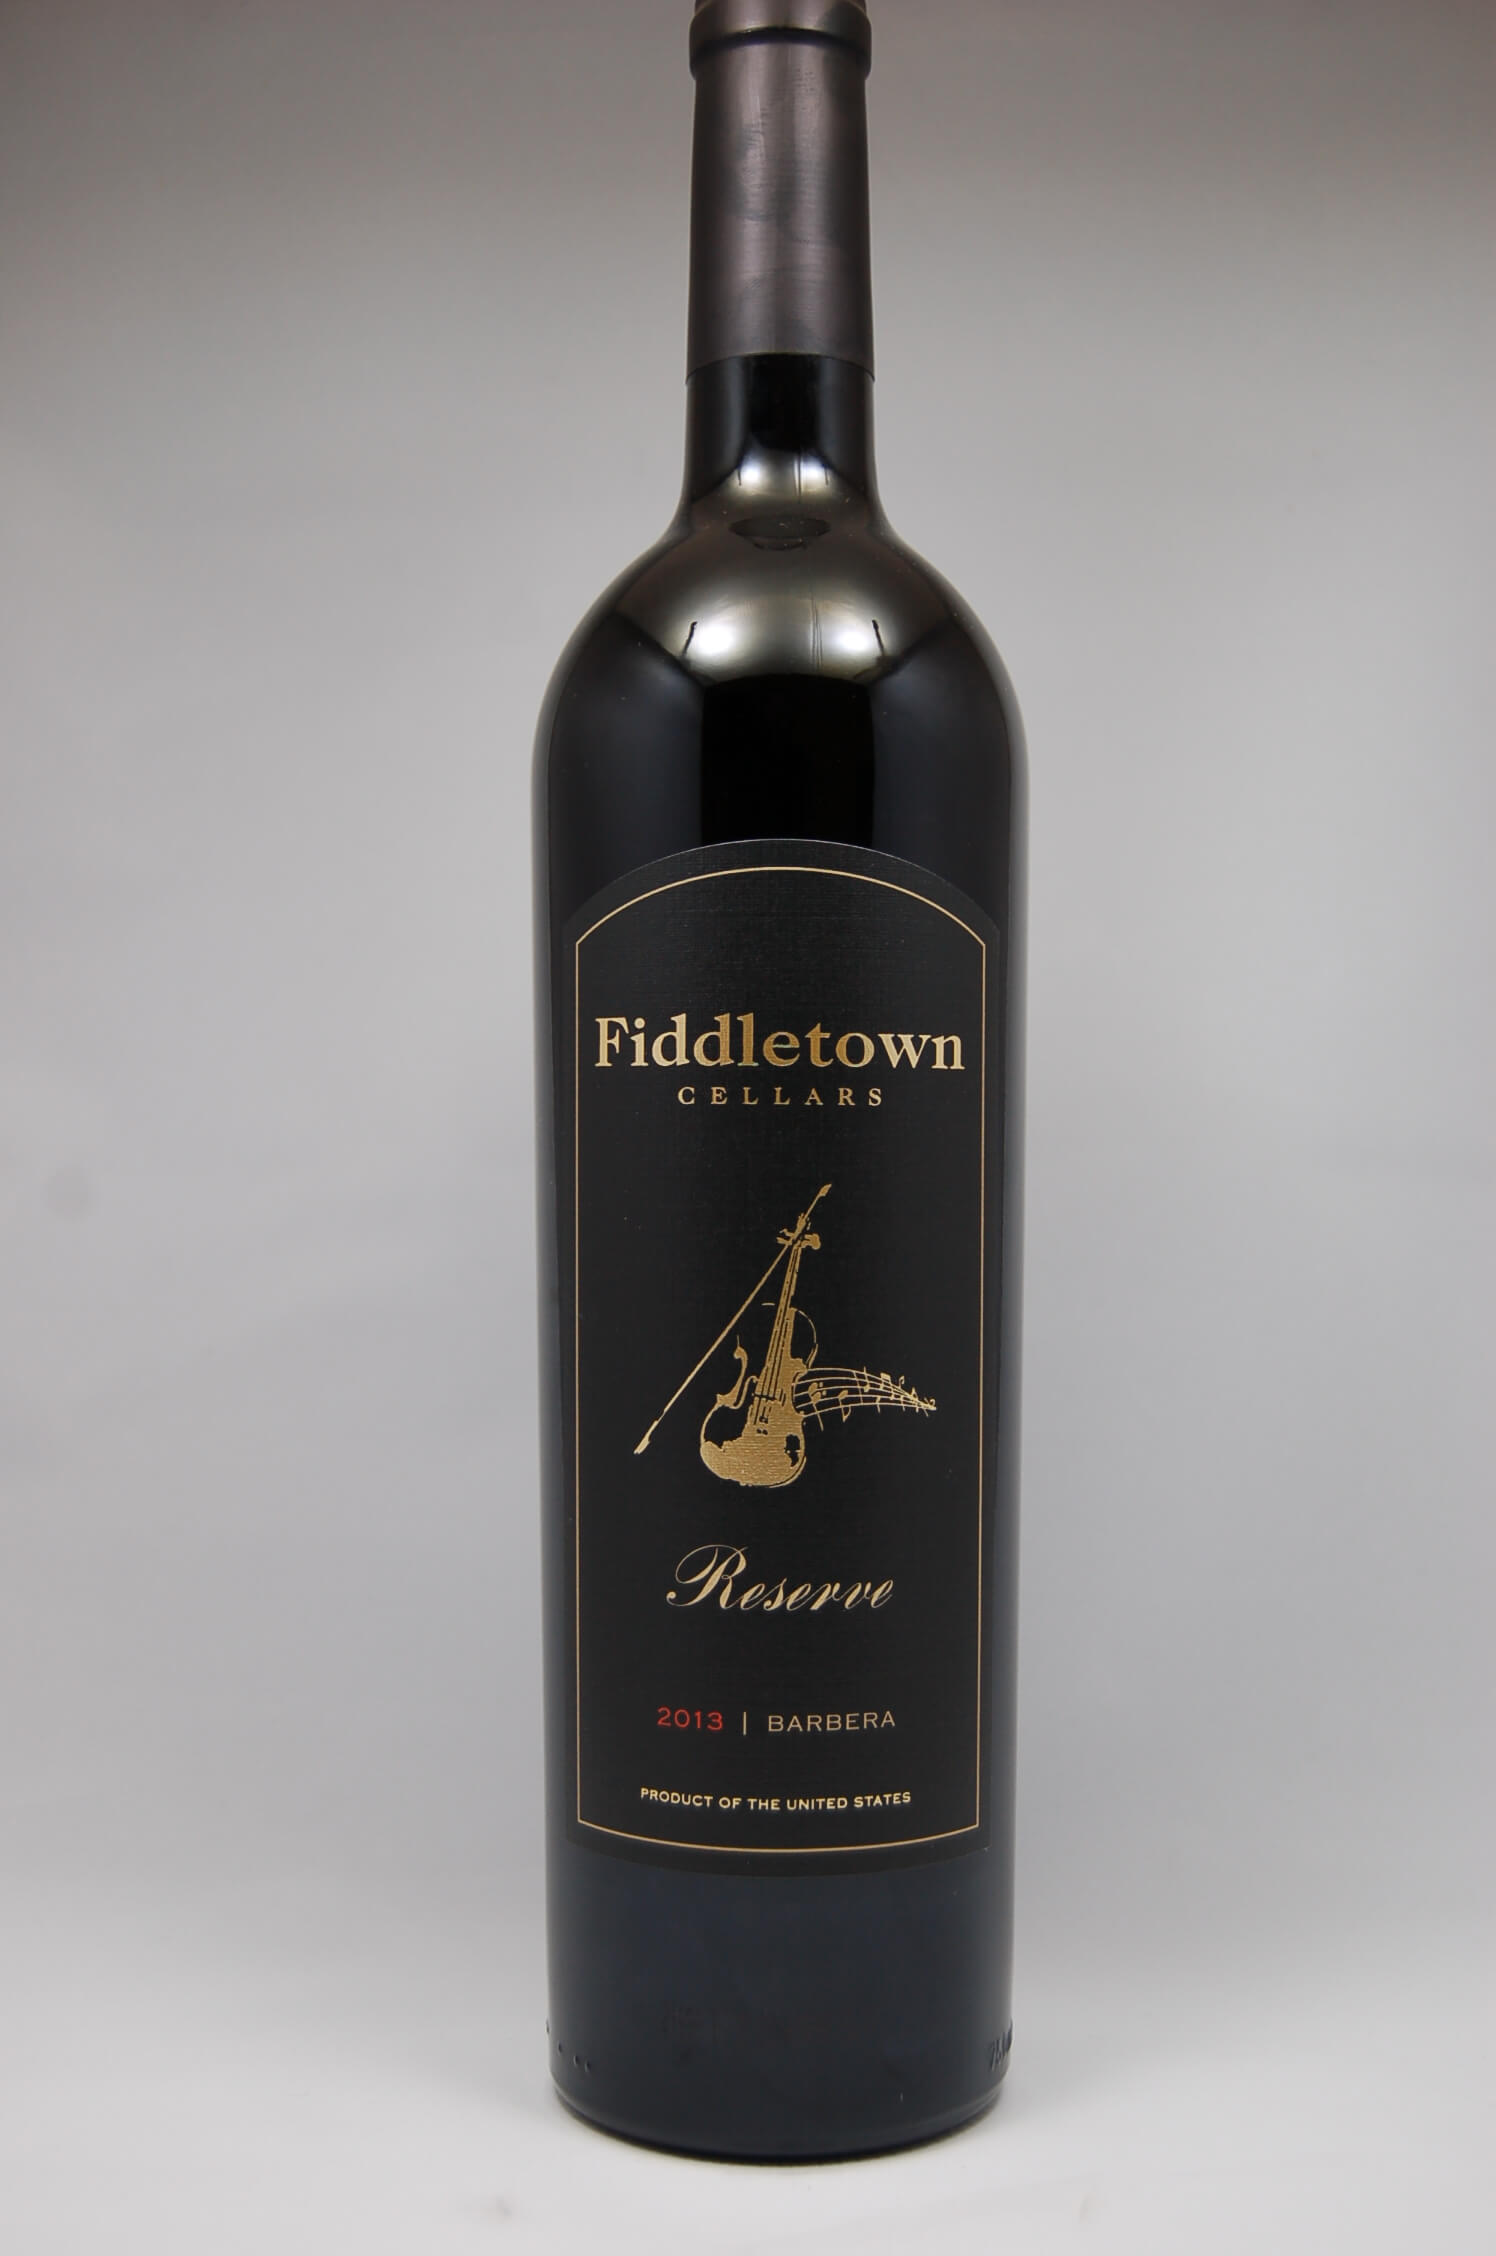 Fiddletown Cellars Barbera Reserve 2013